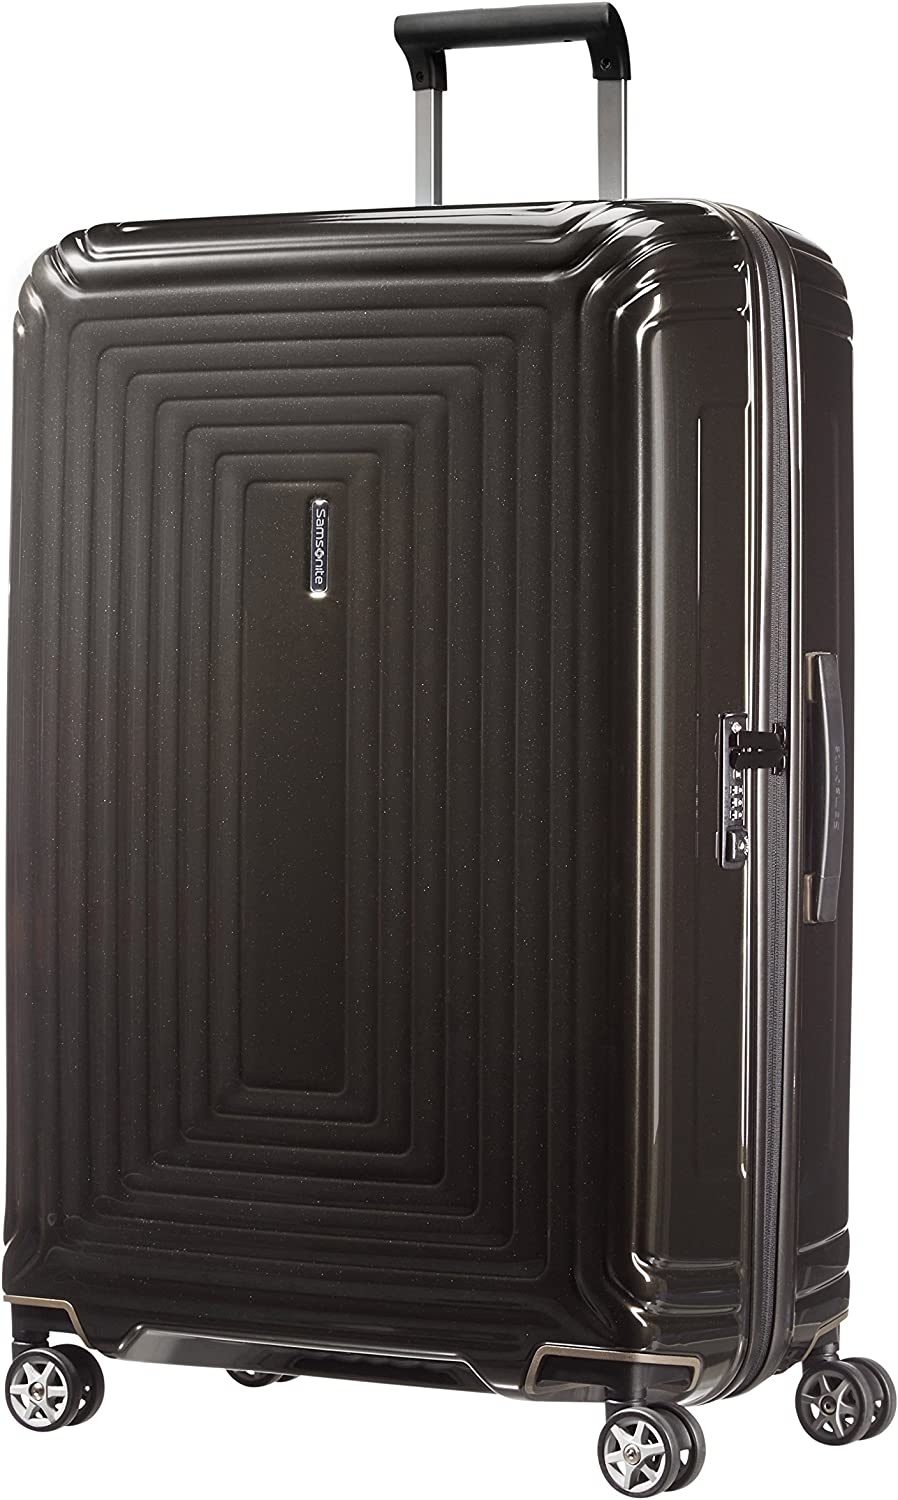 Samsonite Neopulse - Spinner L Maleta, 75 cm, 94 L, Negro (Metallic Black)